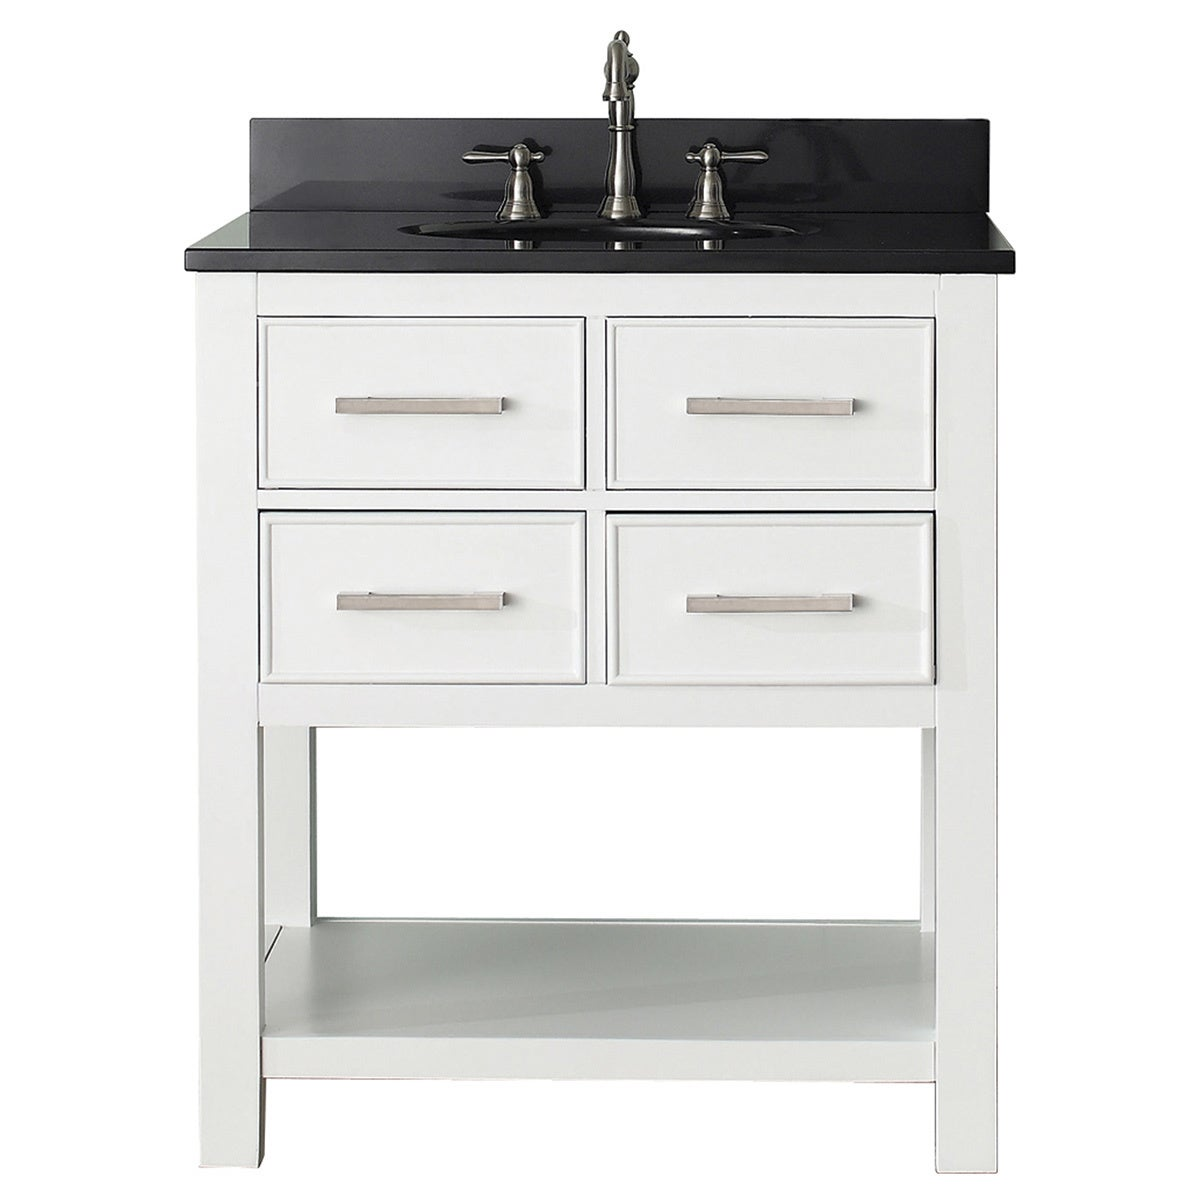 Avanity Brooks White 30 Inch Vanity Combo Overstock Shopping Great Deals On Bathroom Vanities